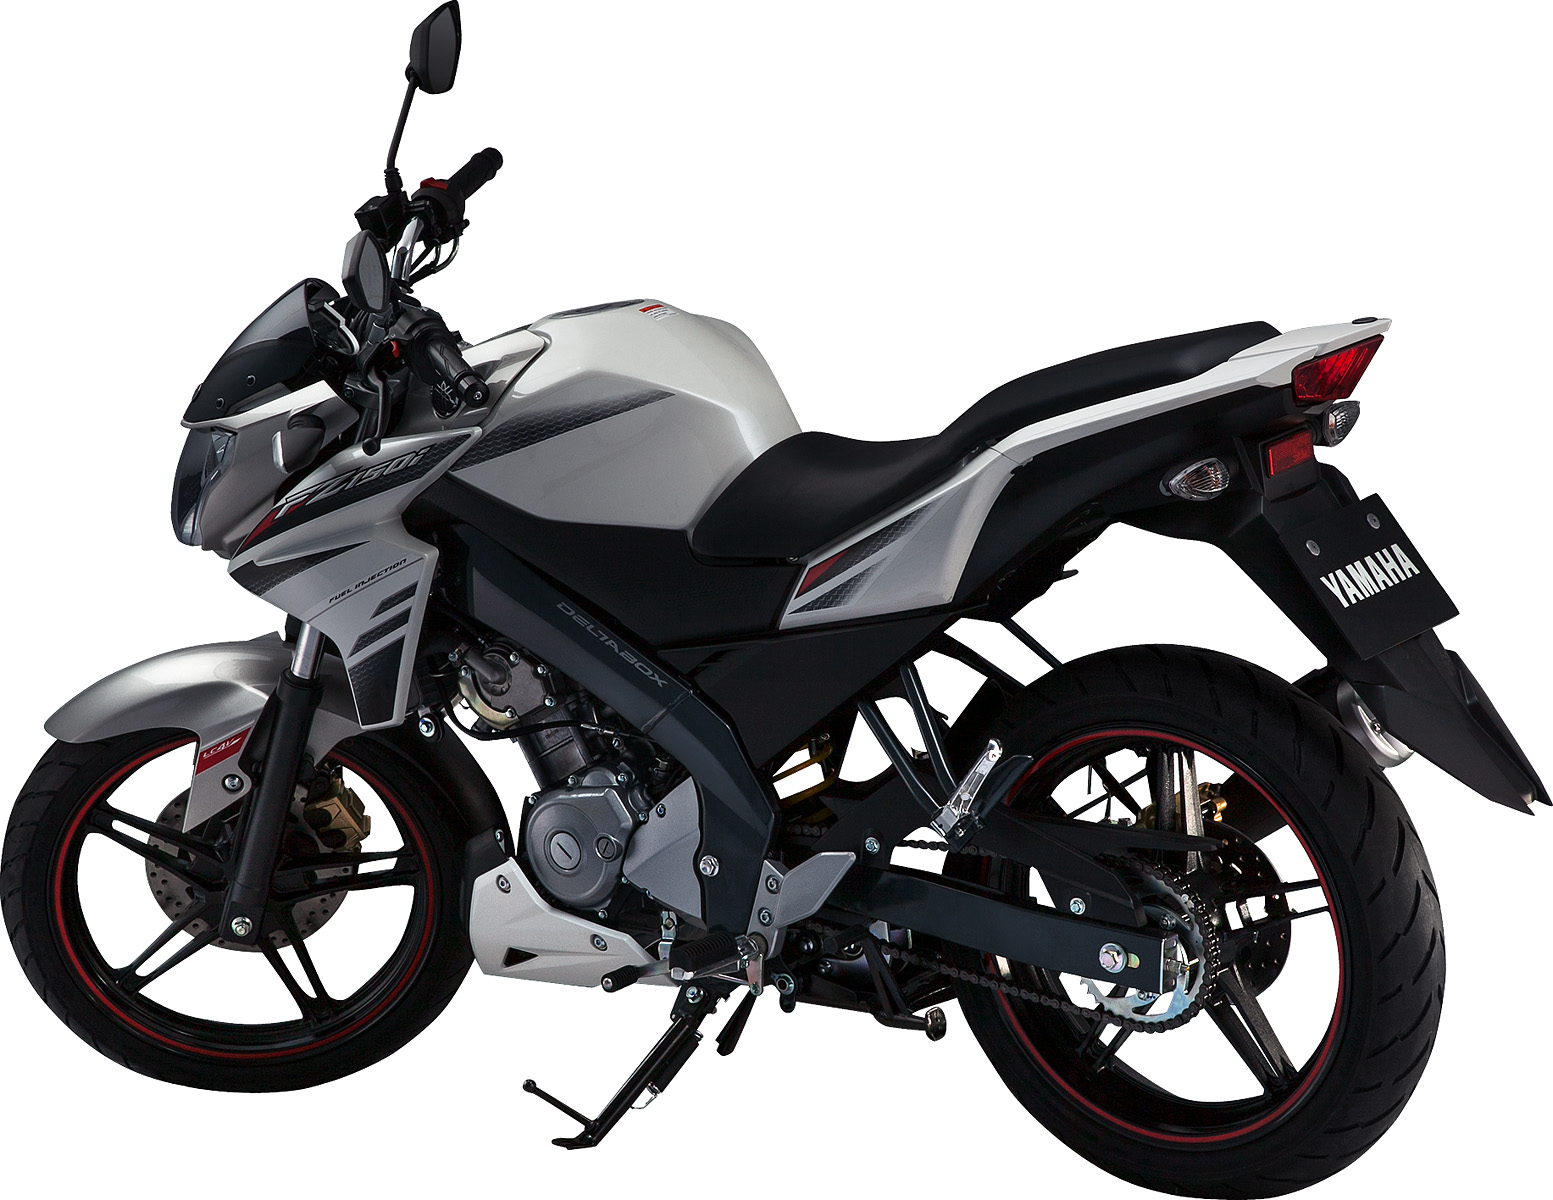 Yamaha FZ150i Motorcycle Specification